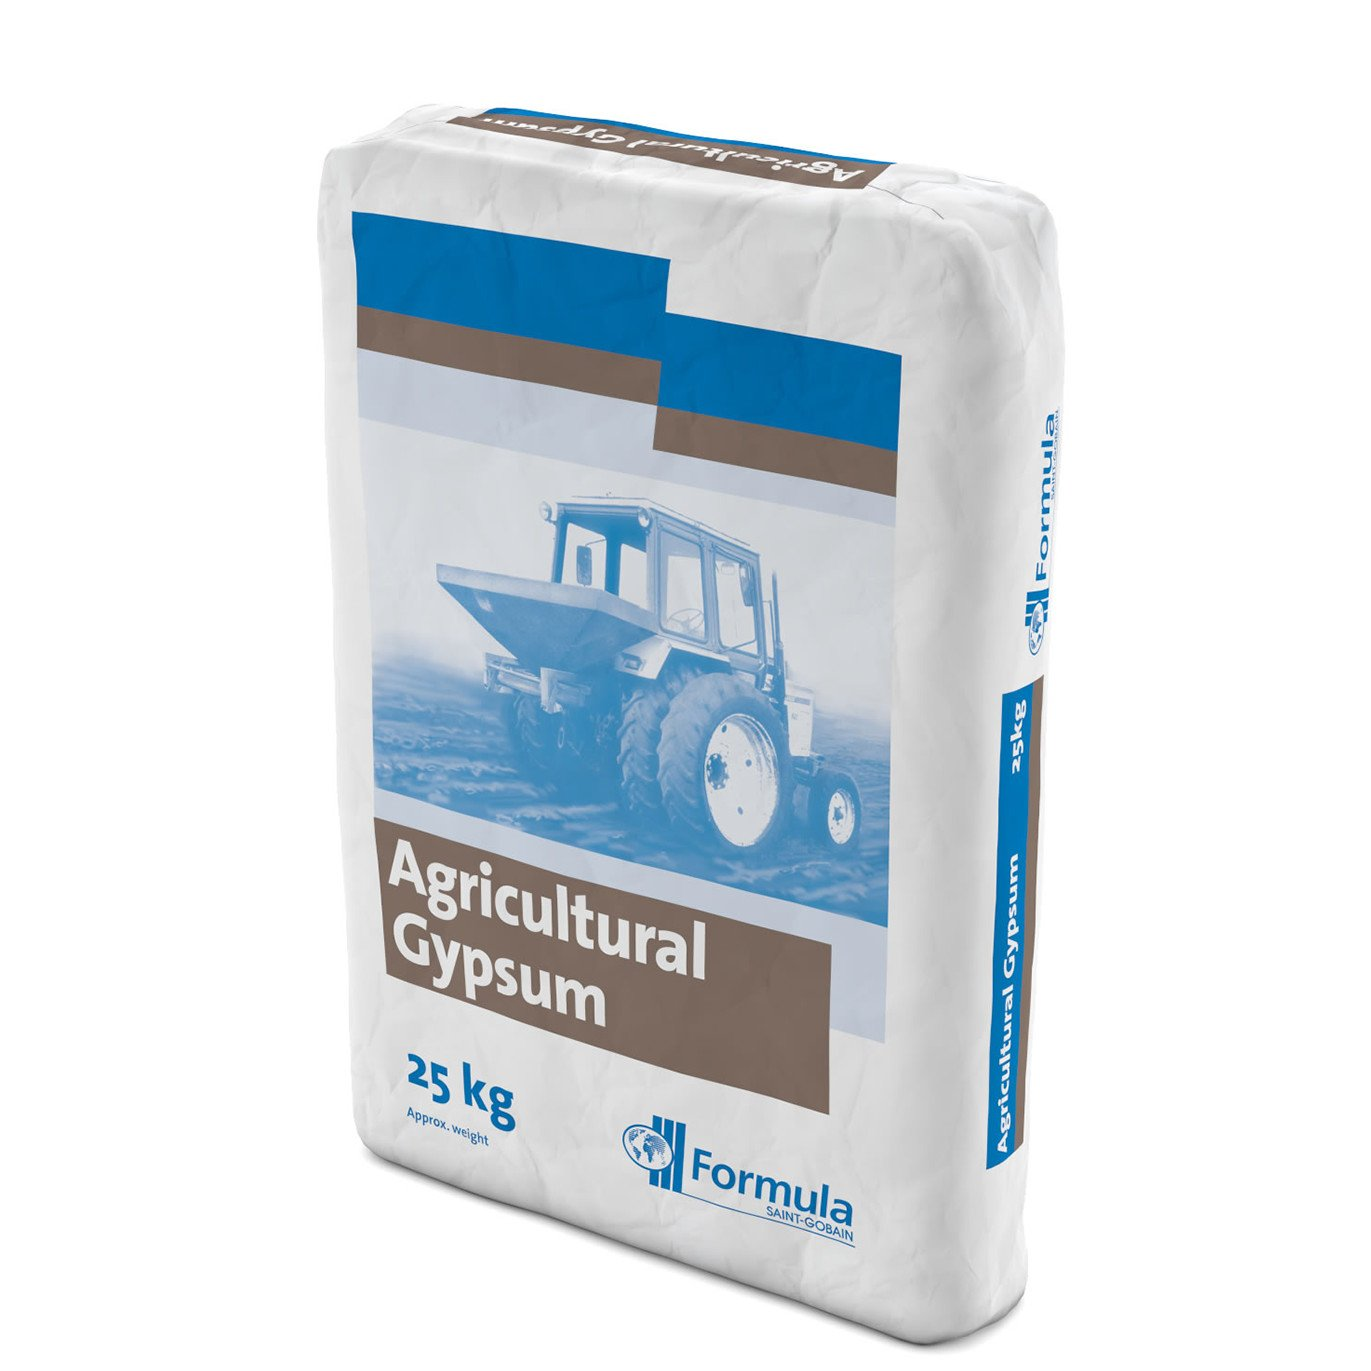 British Gypsum for Agricultural Amendment, Amend Very Compact Clay Soils, 25 kg Bag